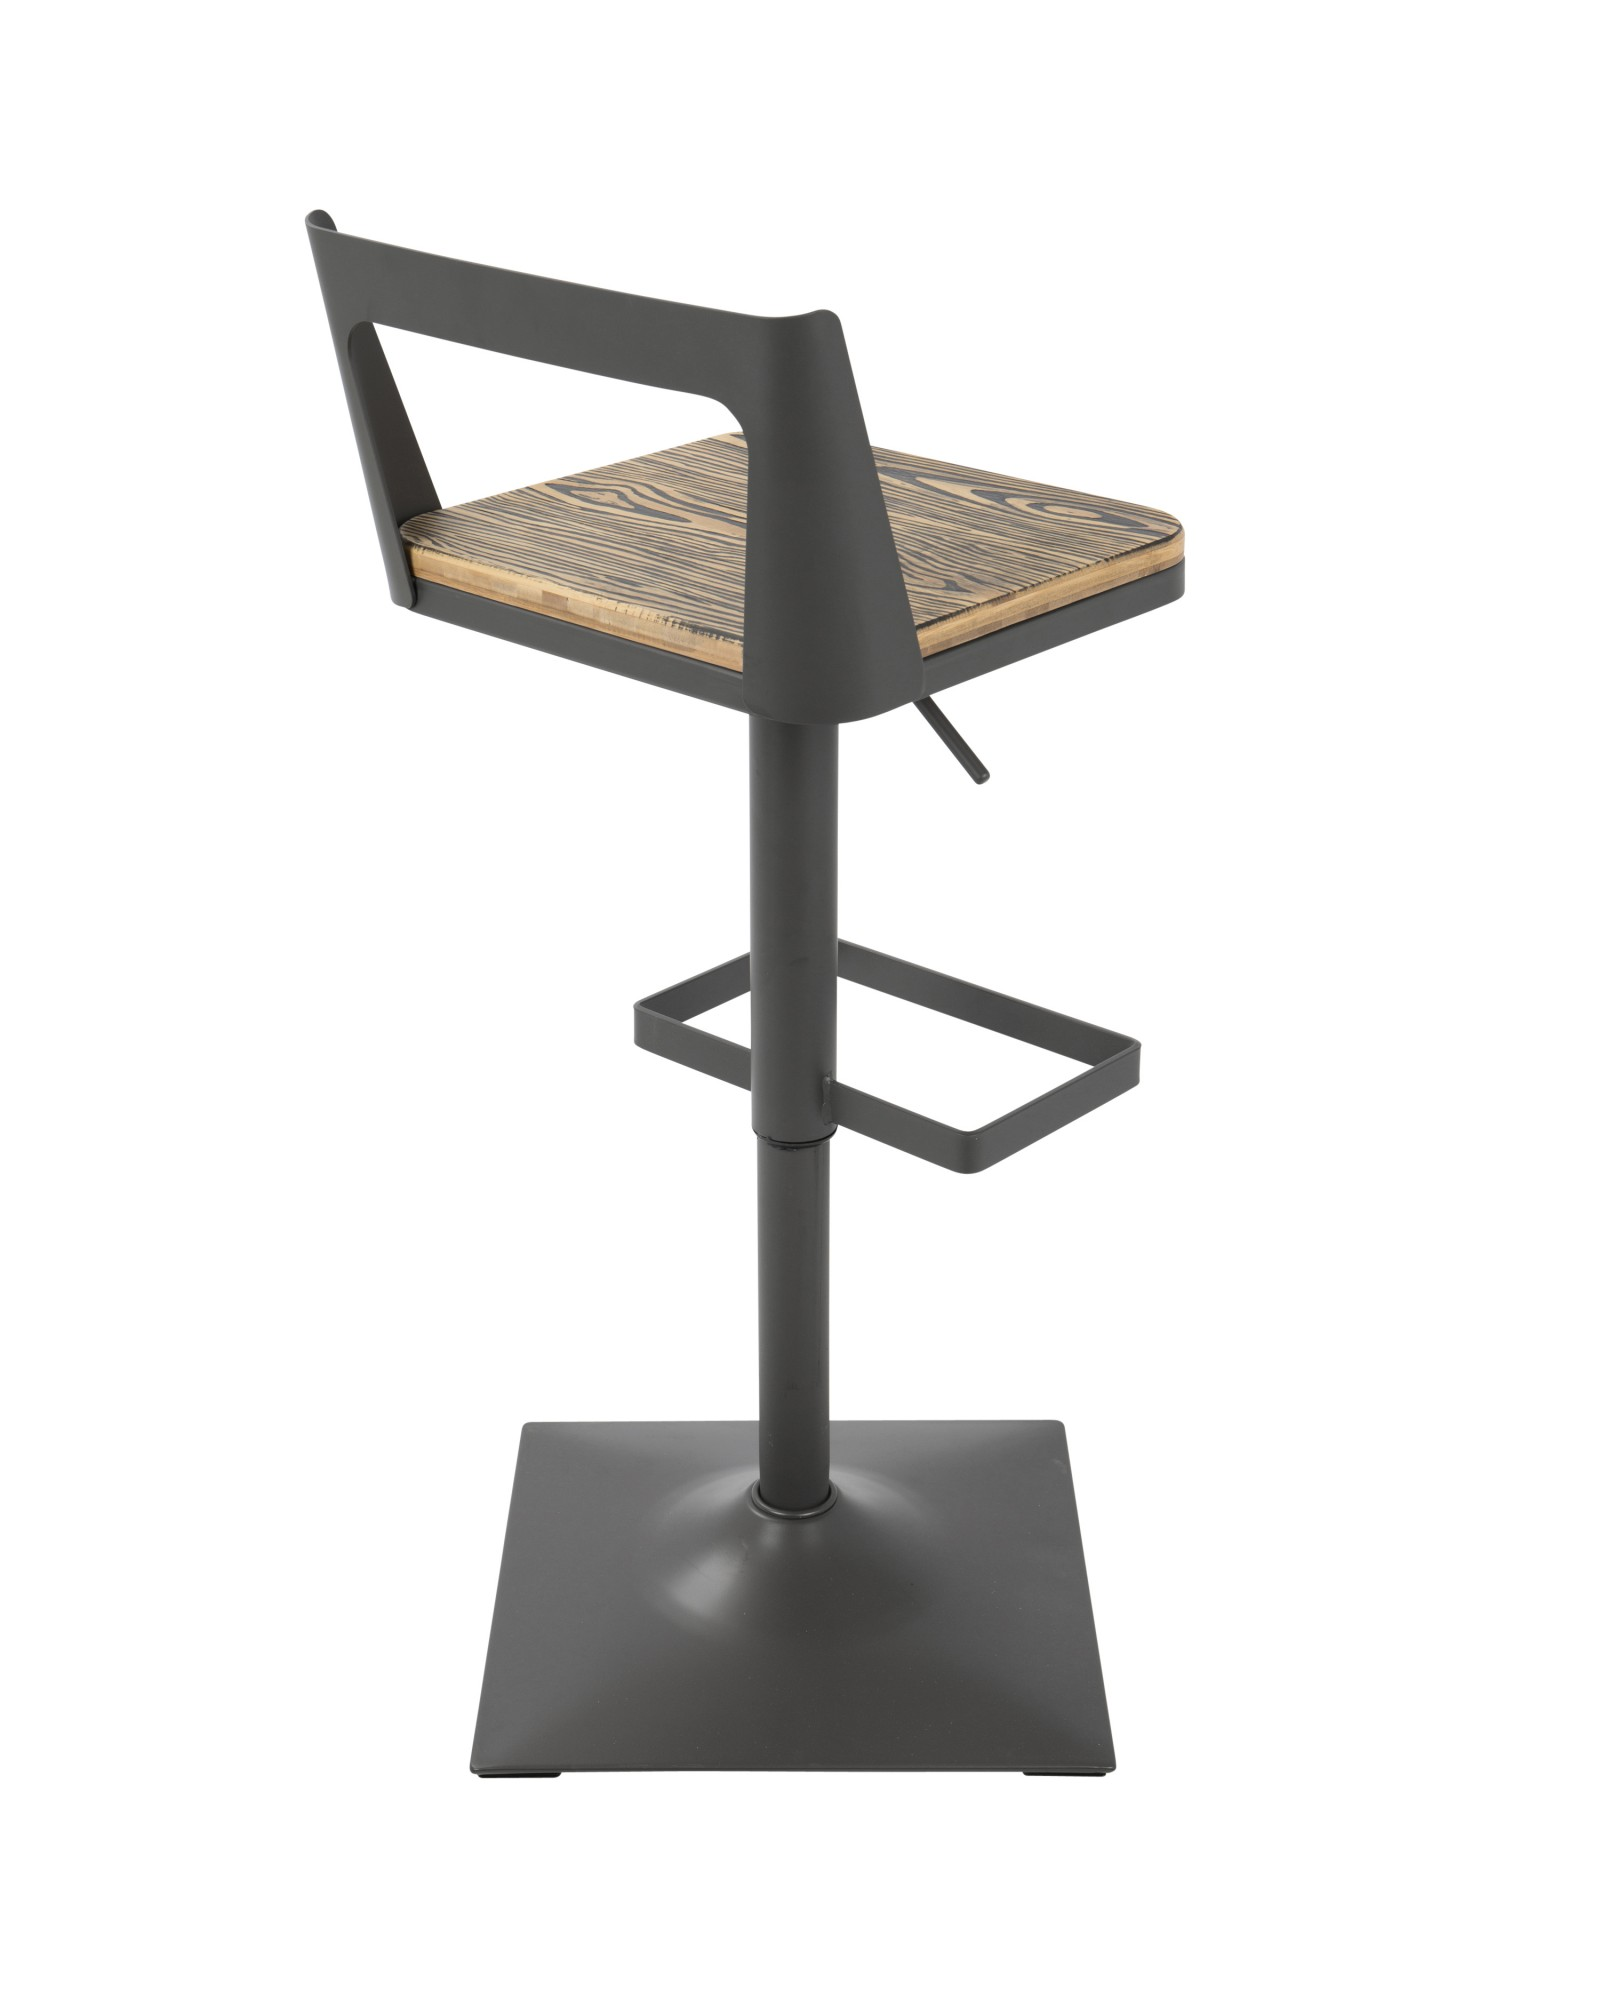 Samurai Industrial Adjustable Barstool in Grey and Brown